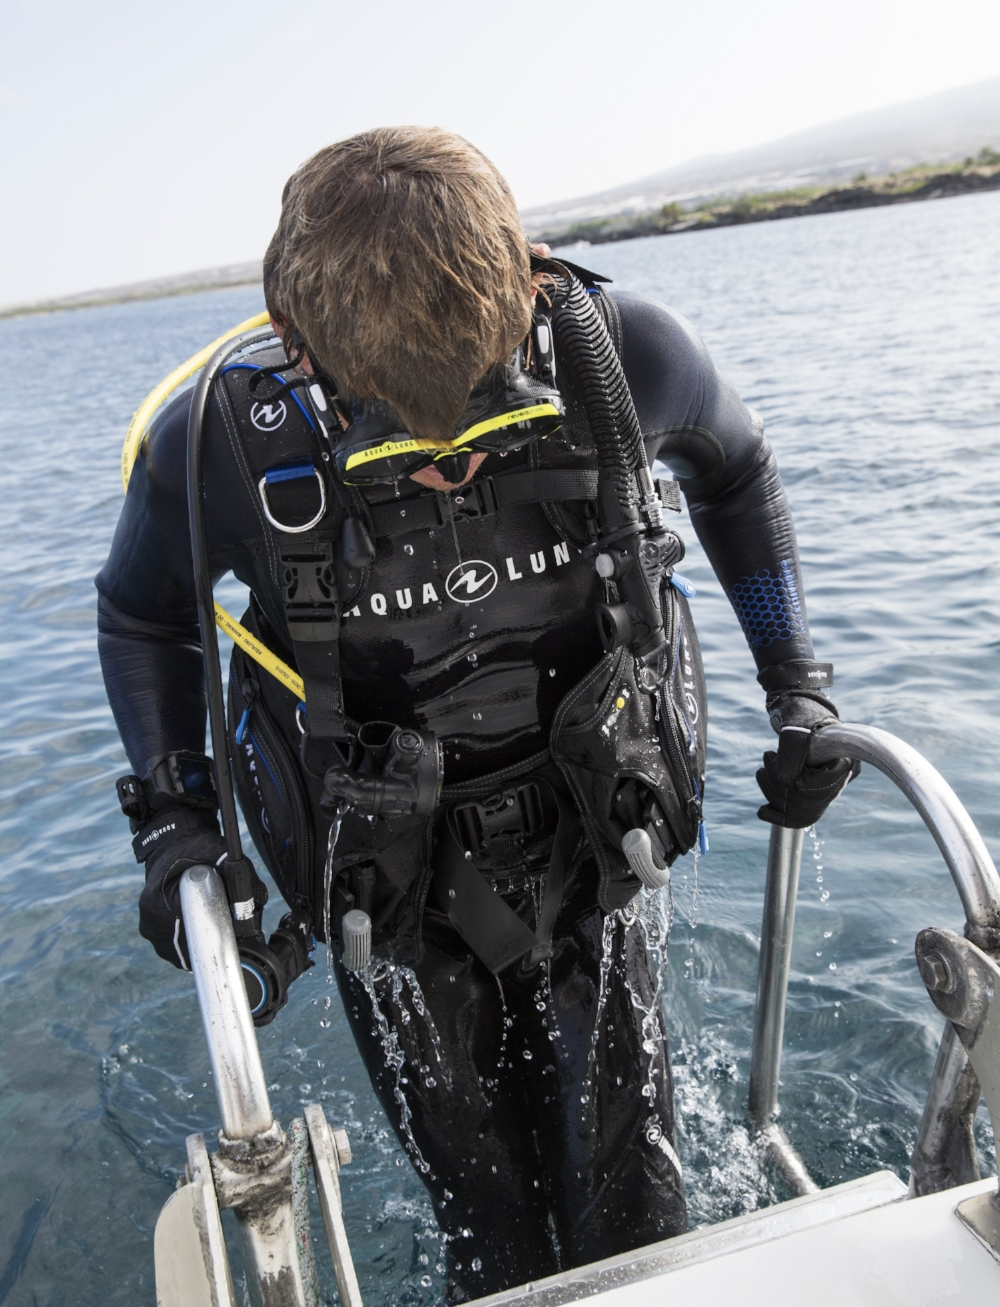 Dive Tools - No dive setup is complete without a good array of dive tools.From handy items needed in an emergency to specific equipment for certain types of diving, see our array of Dive Lights, Dive Knives, Surface markers and much more!